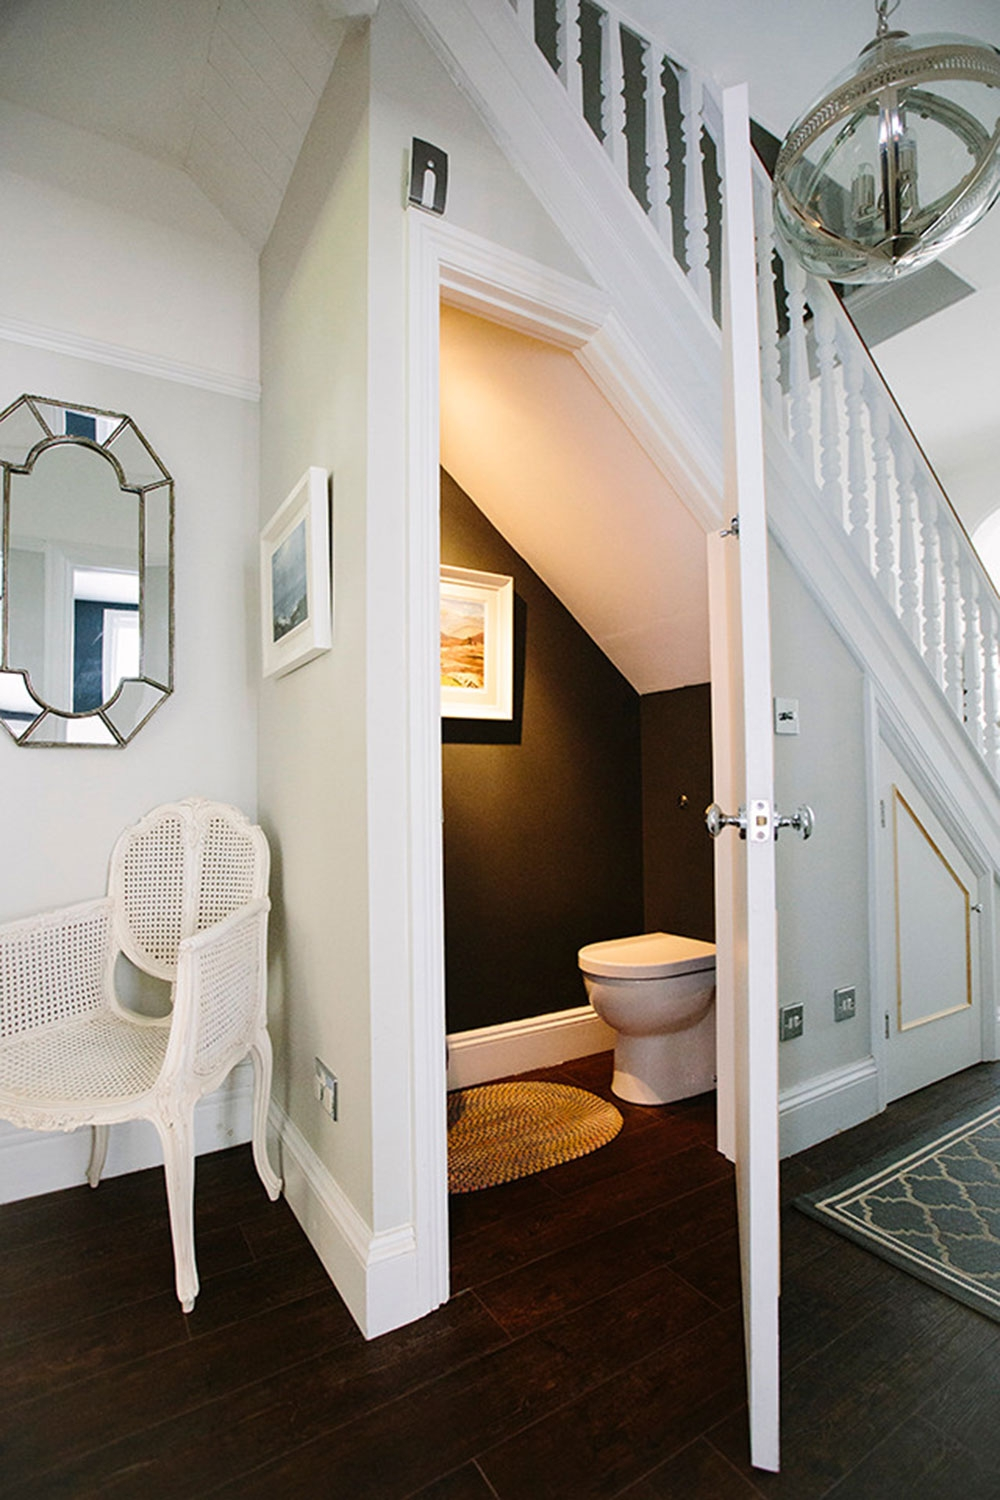 Bathroom Under Stairs And Tips And Best Practices For This Space   Under Stair Toilet Design   Toilet Separate   Small   Powder Room   Down   Minimalist